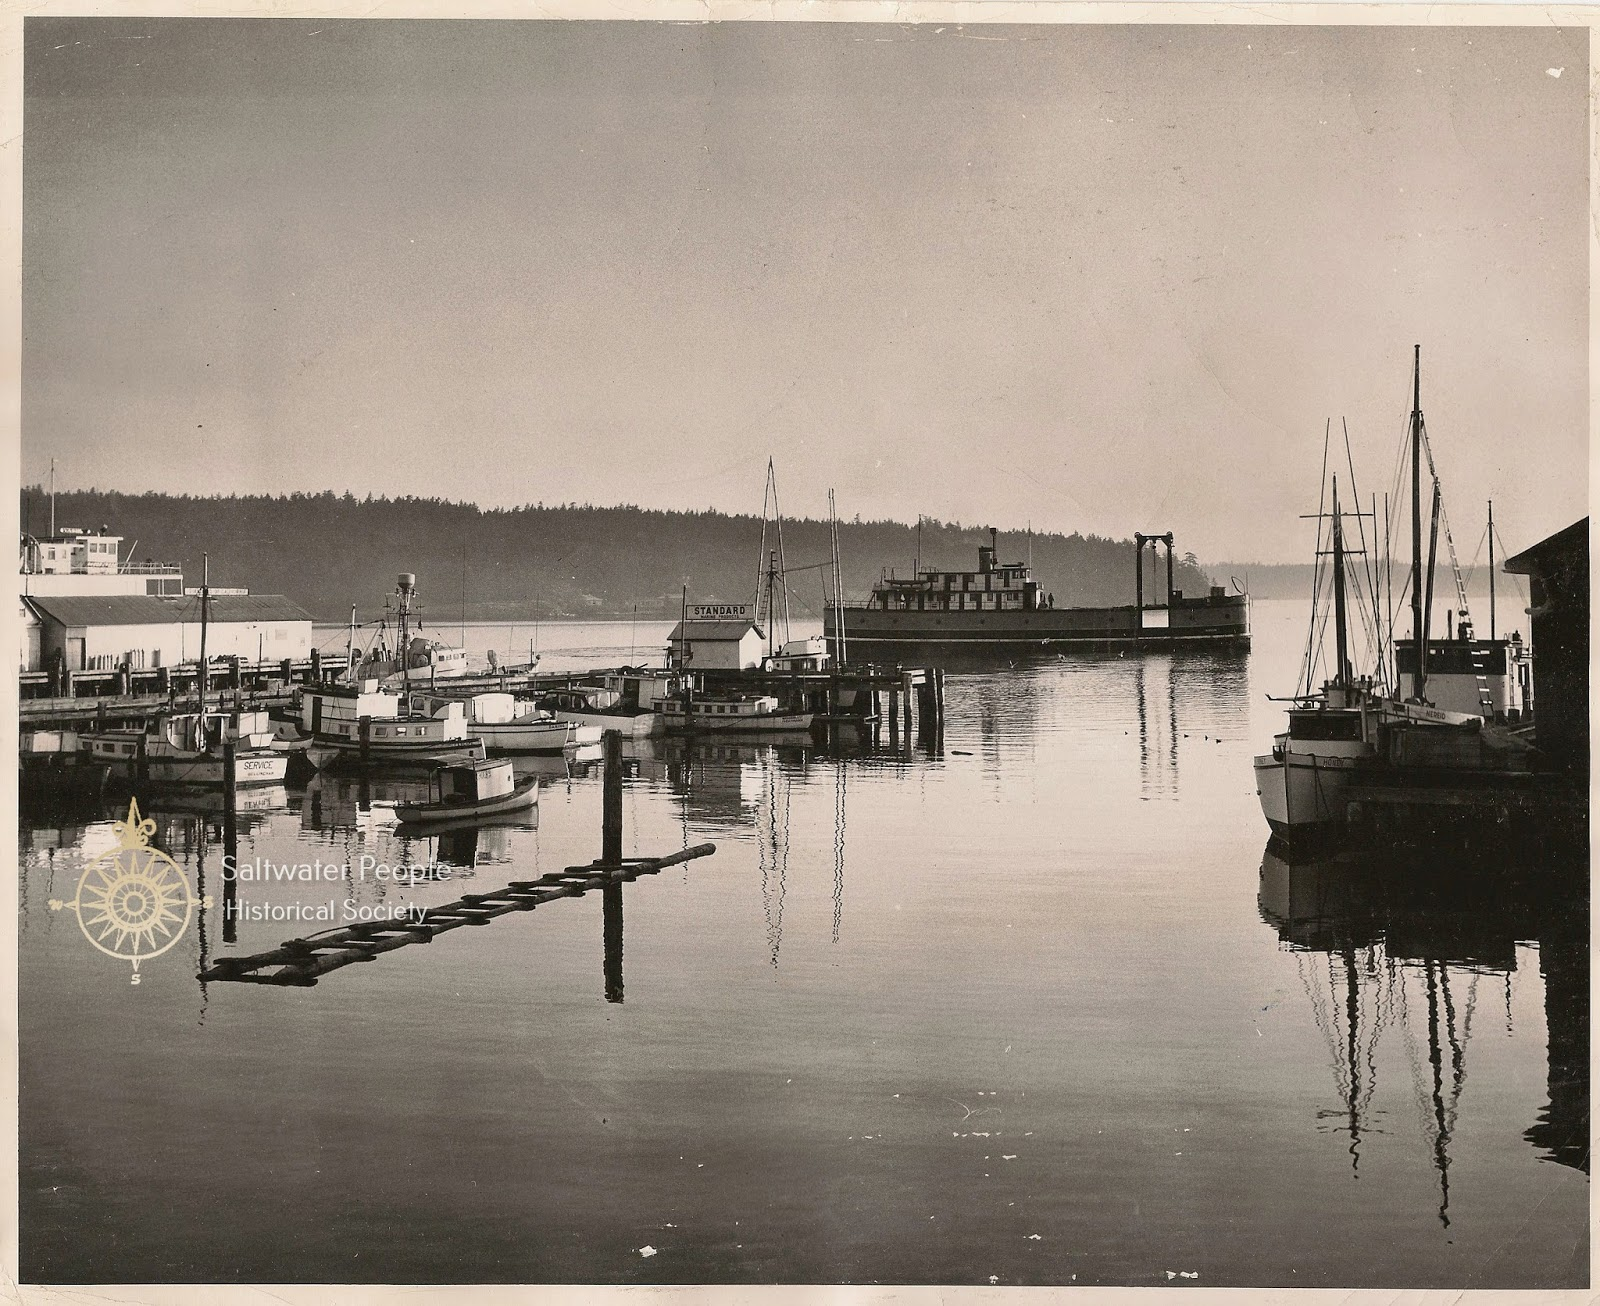 Saltwater people log the good ship vashon 453 am arrival at friday harbor wa 23 may 1948 the indian nereid daring service honey nvjuhfo Choice Image